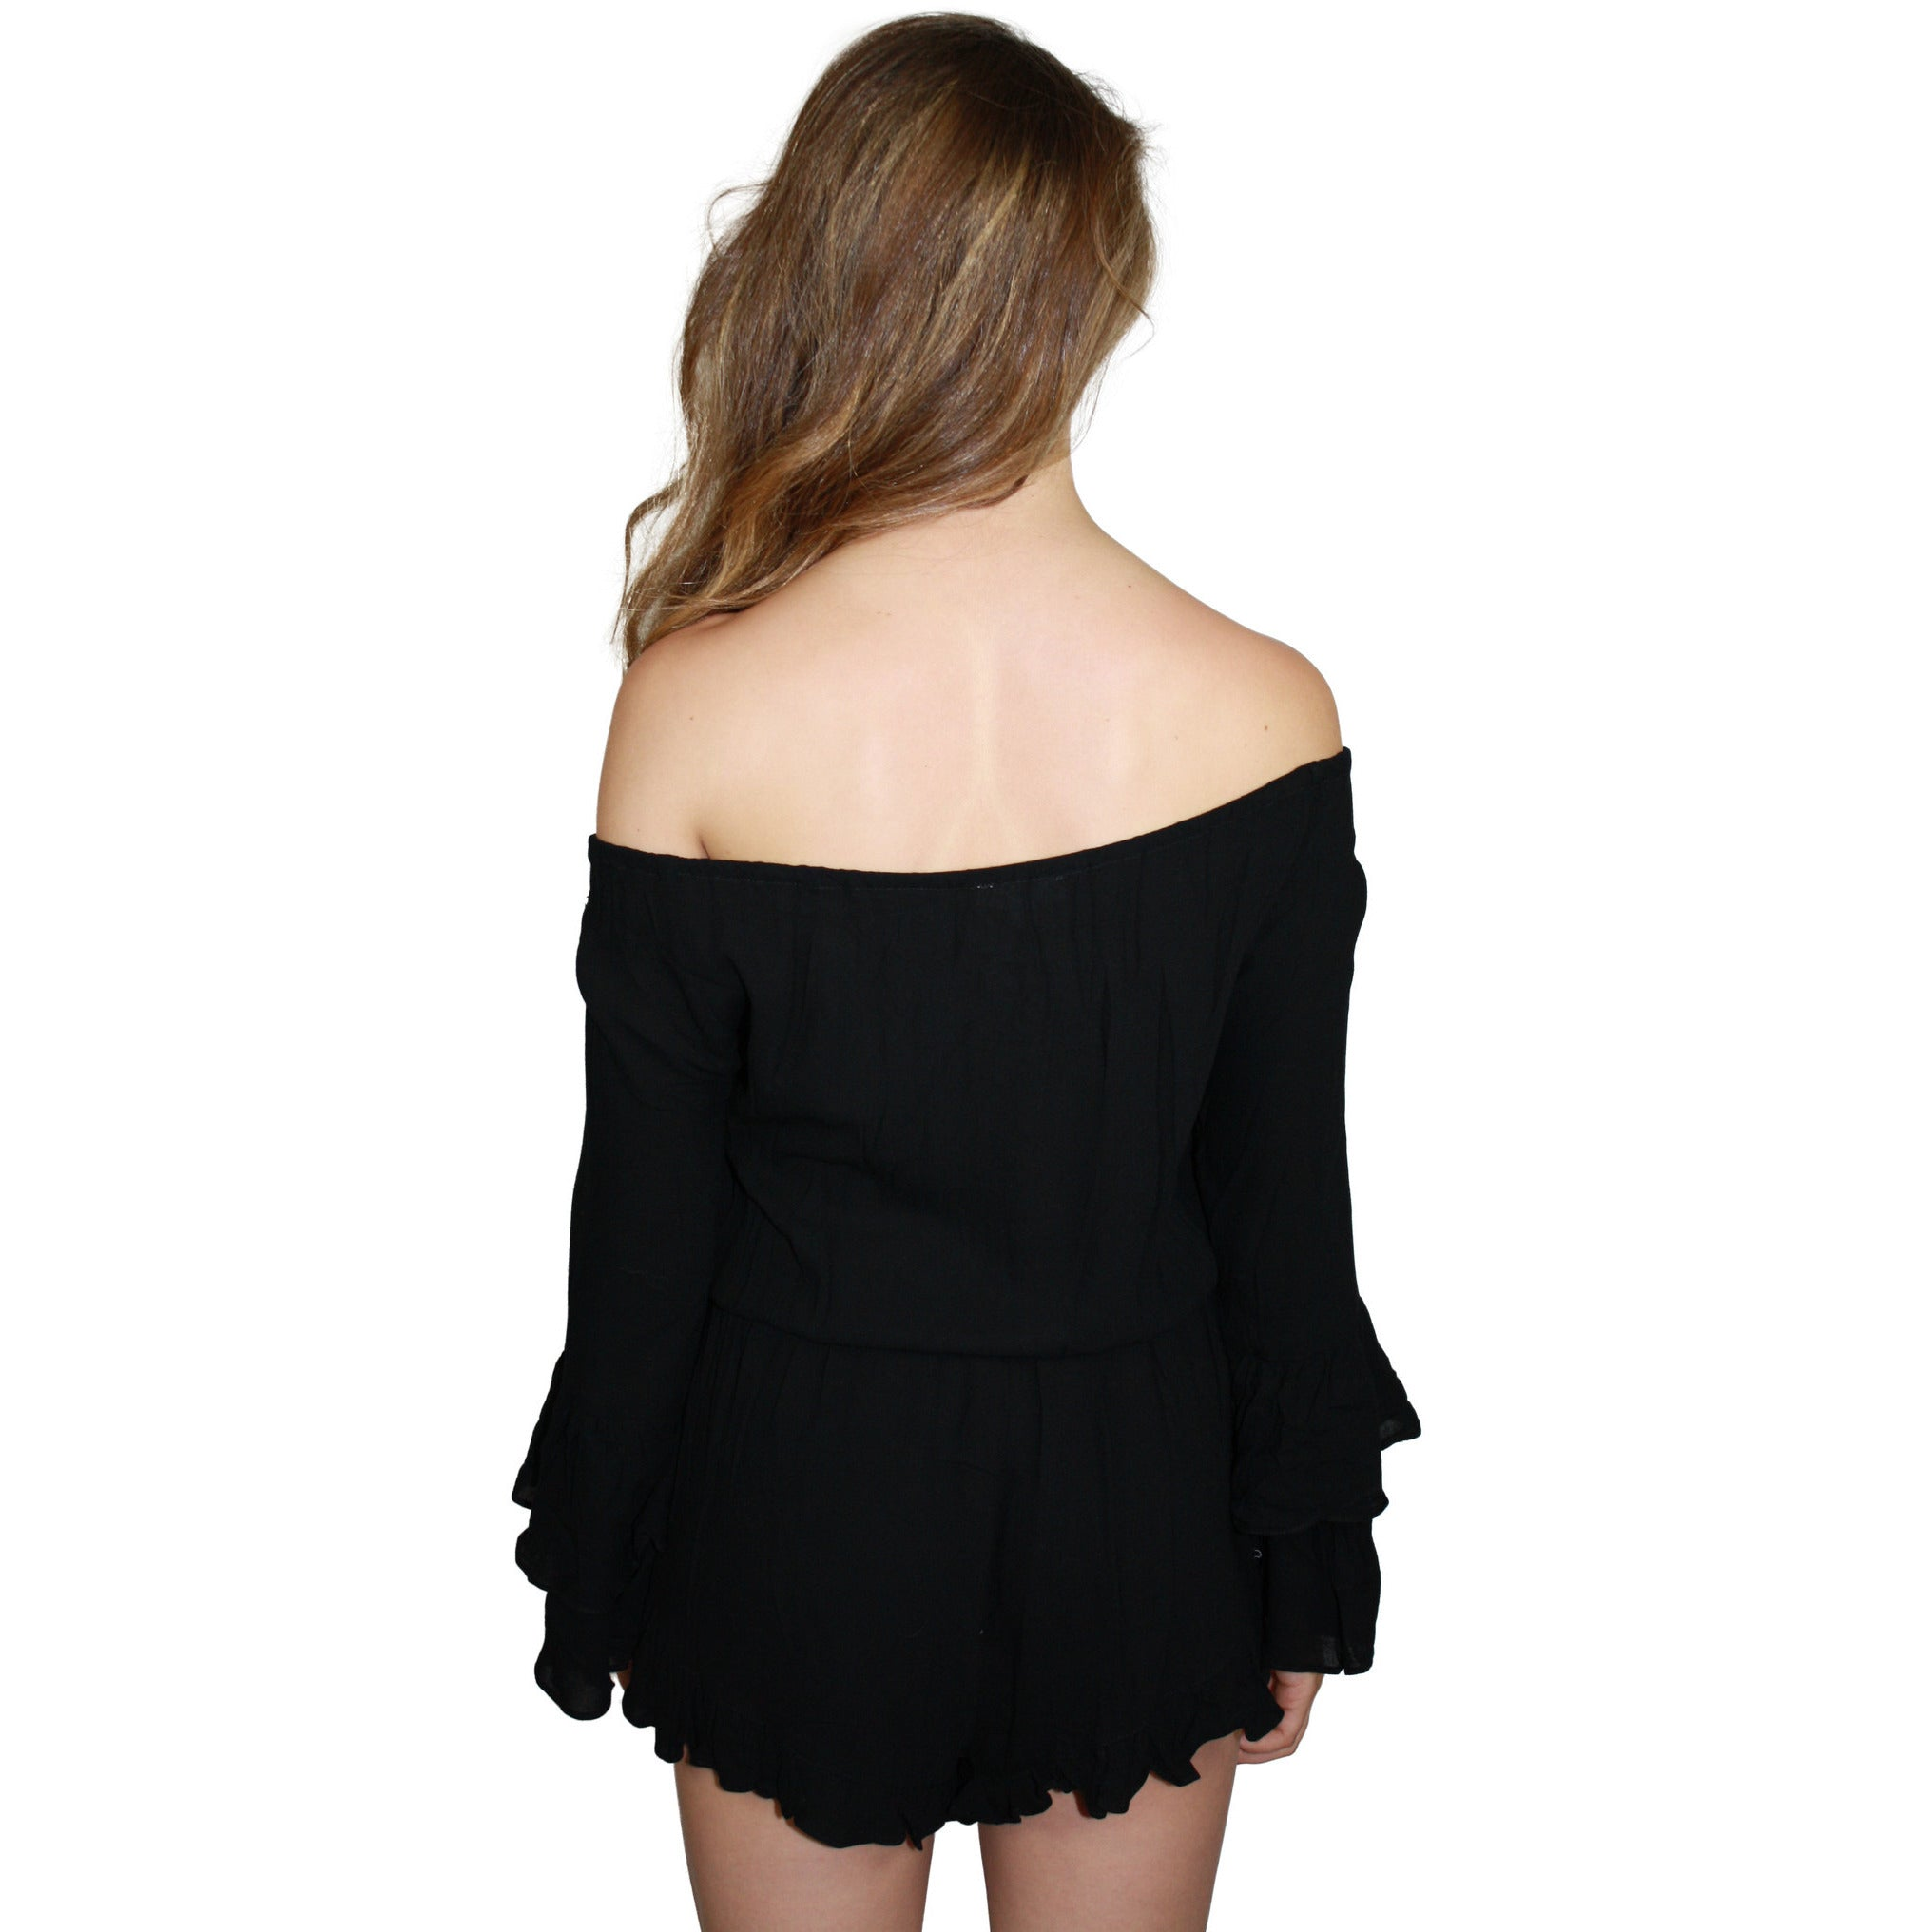 Tayler Ruffle Off Shoulder Button Up Romper in Black